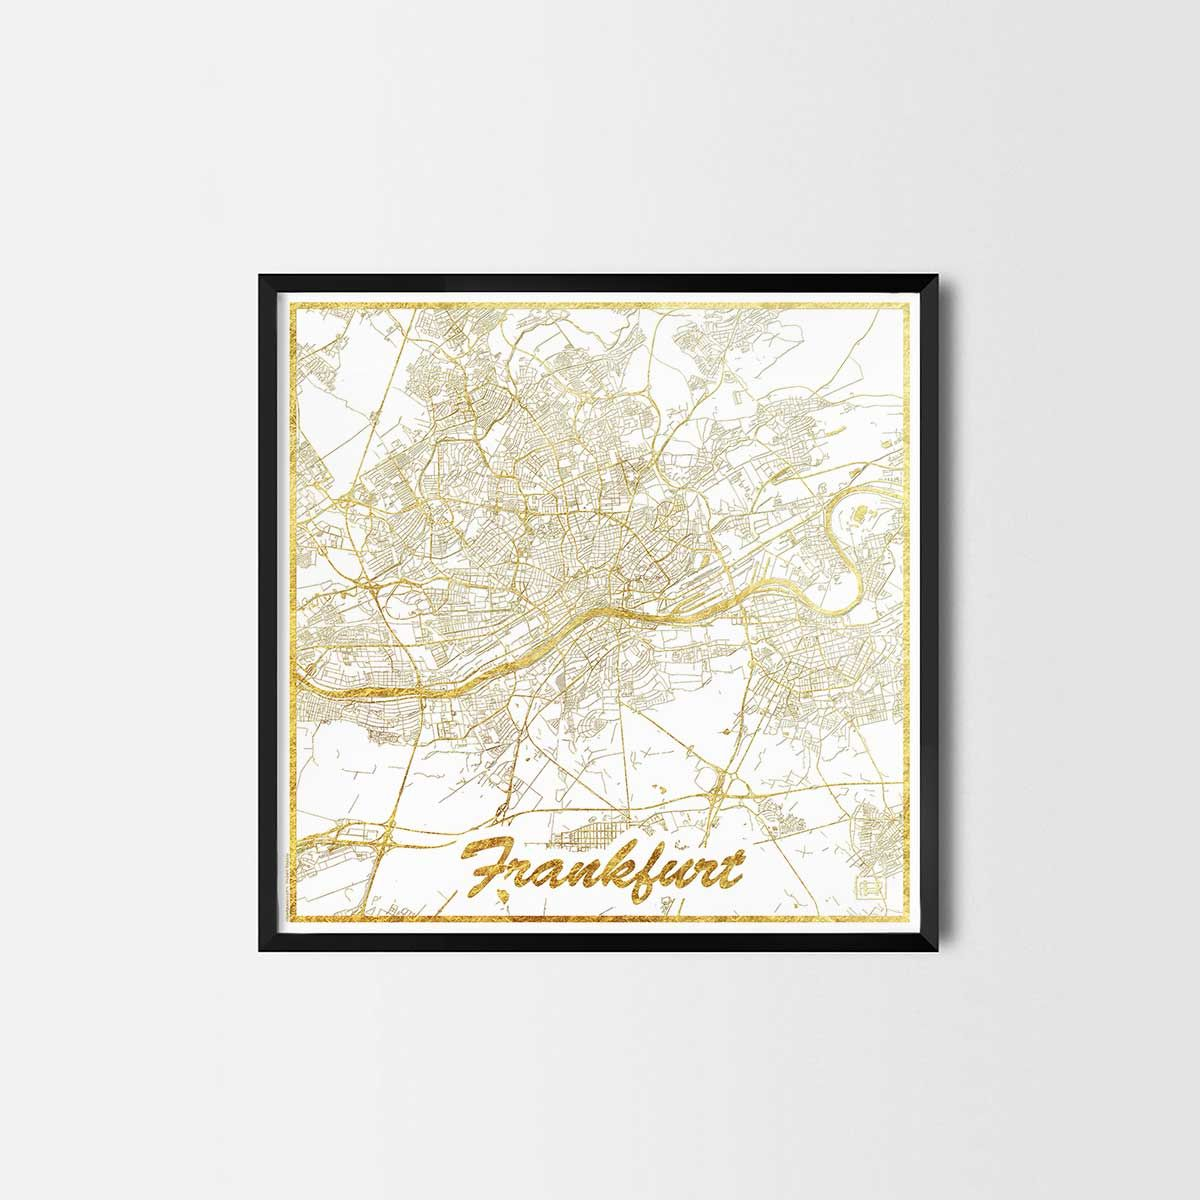 Frankfurt map posters - City Art Posters and Prints | Pinterest ...